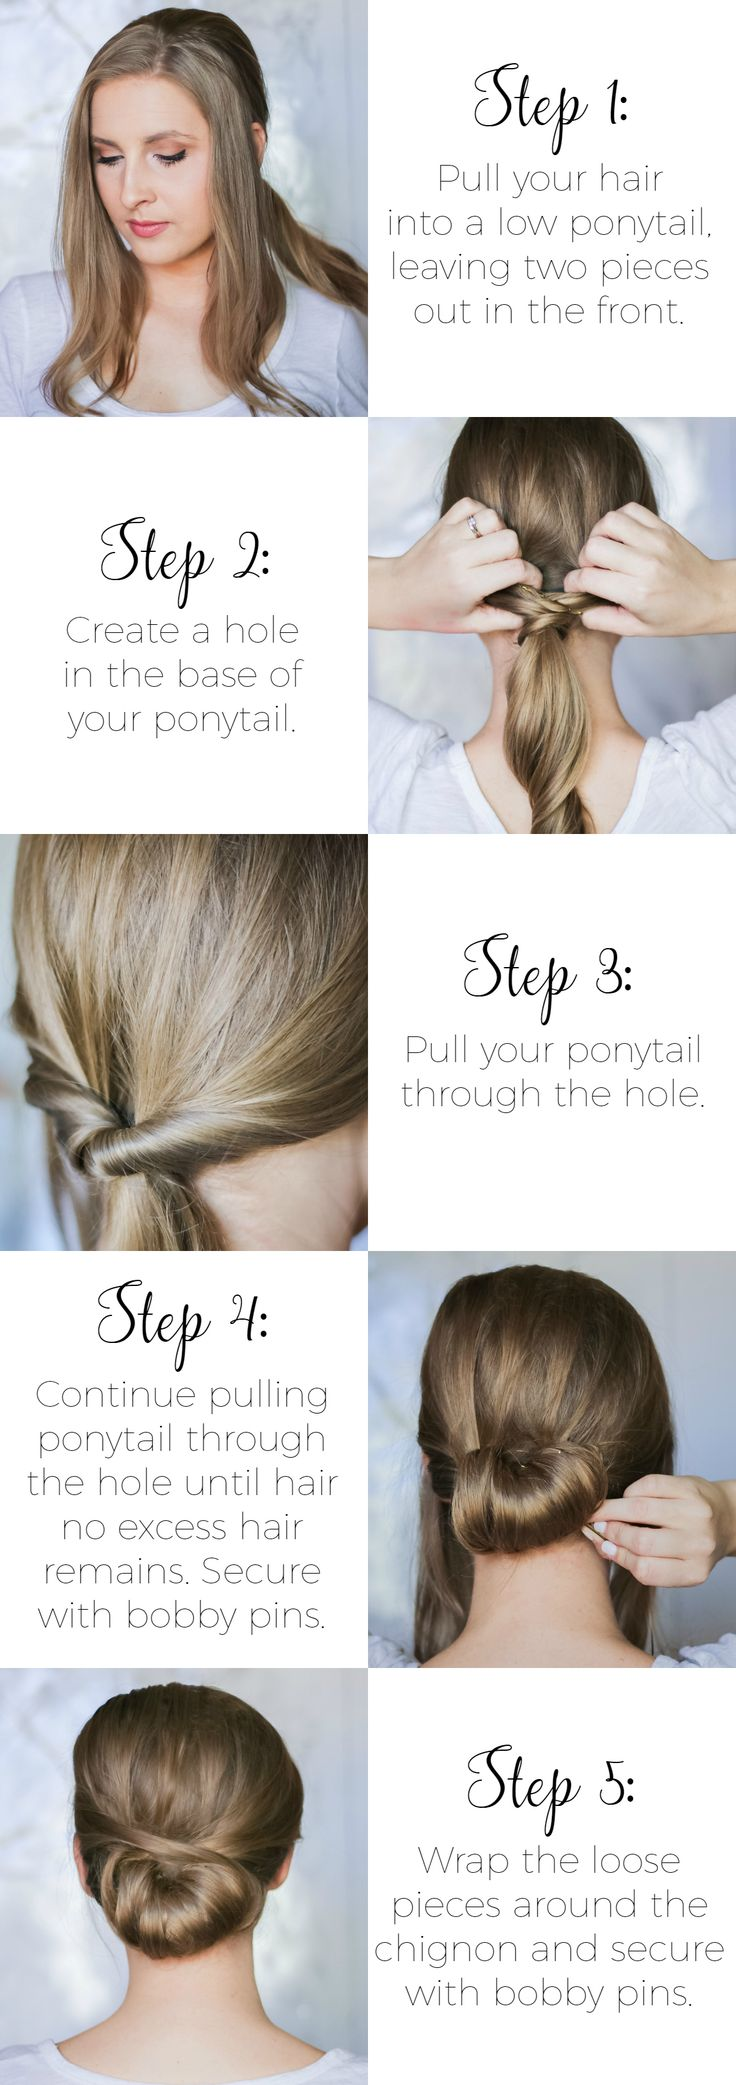 making of hair style 1000 ideas about lazy day hairstyles on 6868 | 857469a4263f8d7d7e56eb9c7035e16d